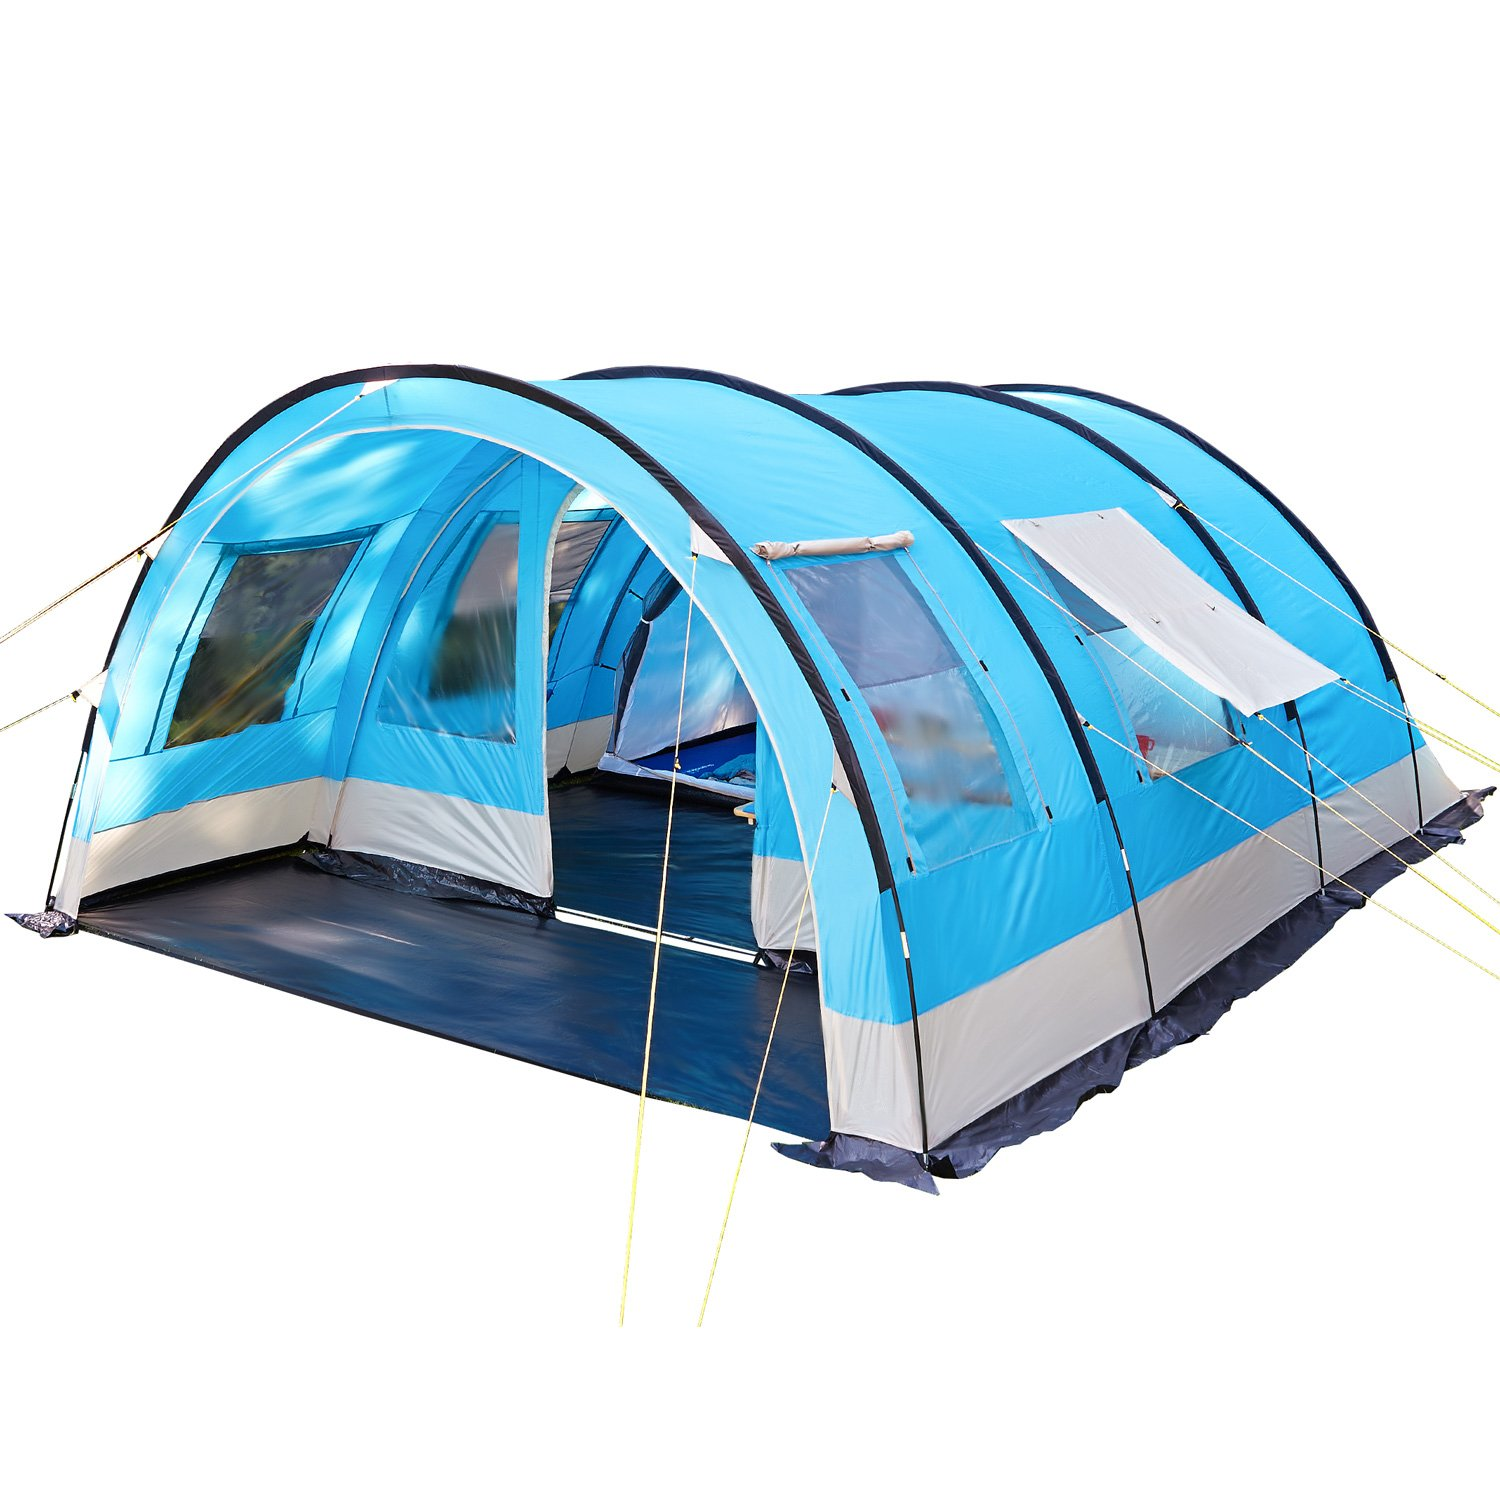 new arrivals db483 64fcc Skandika Helsinki Family Tunnel Tent with Moveable Front Wall, a Dividable  Sleeping Cabin and 5000 mm Water Column, 6 Person/Man